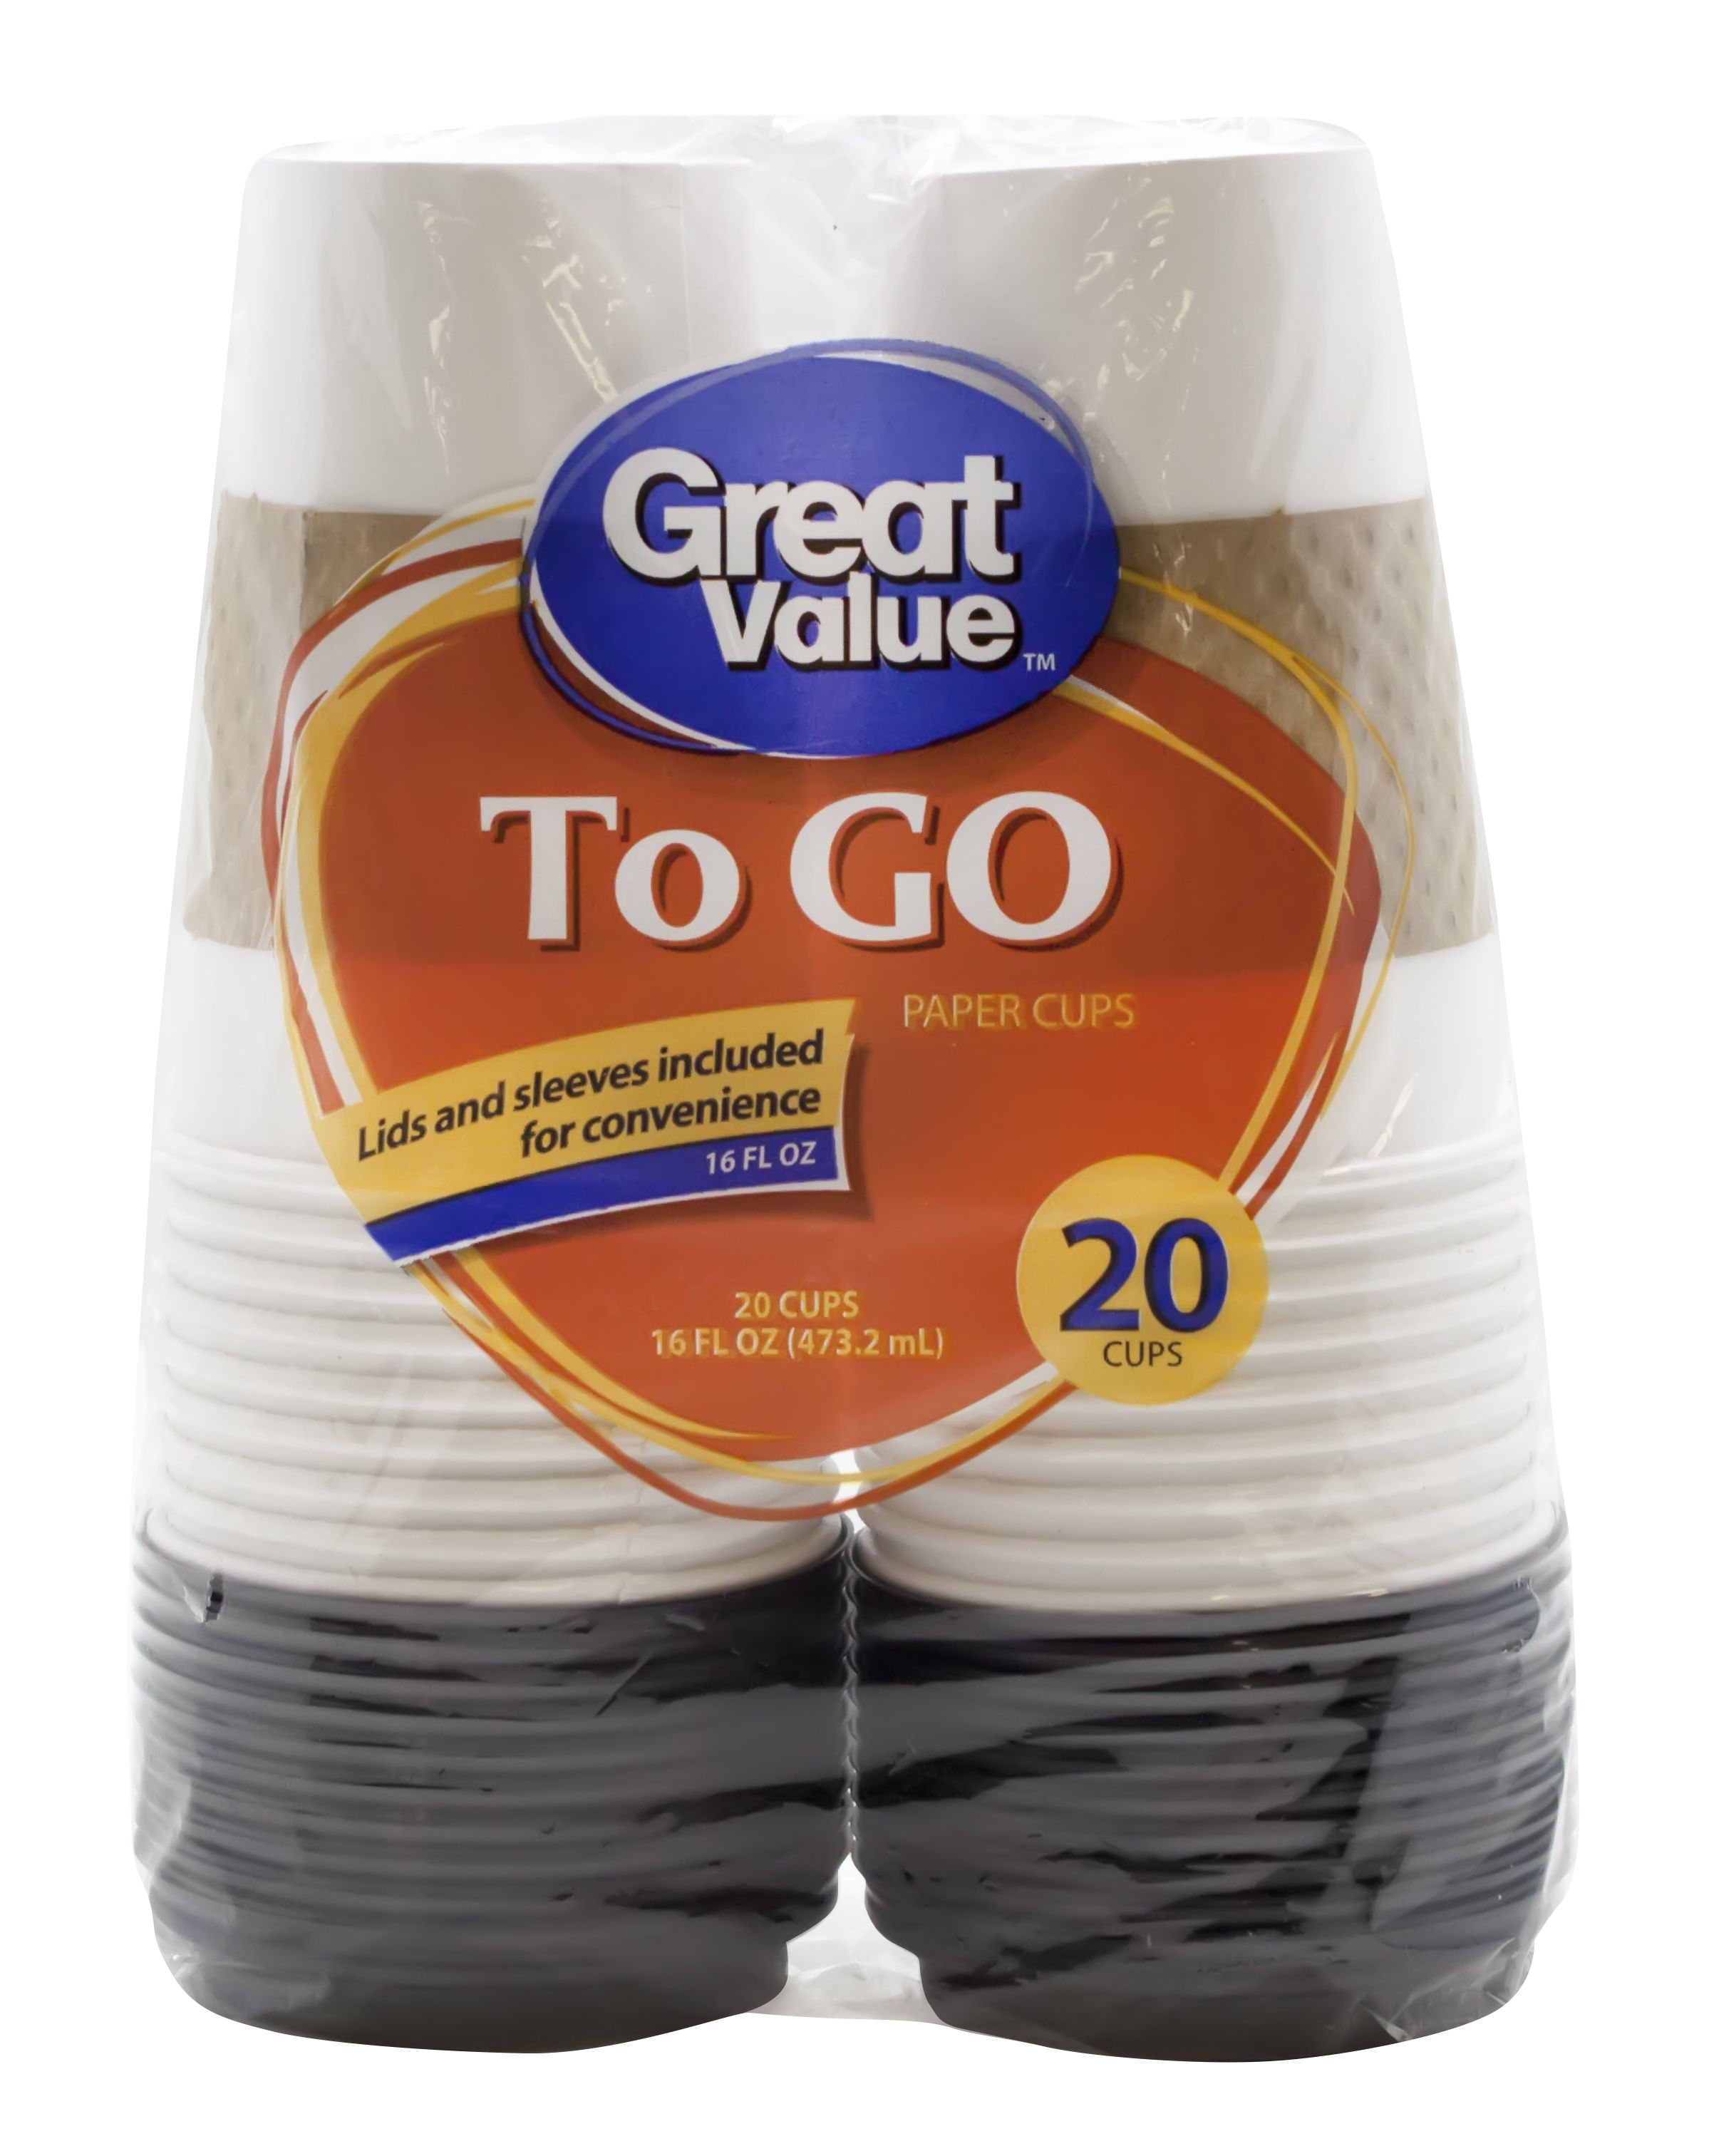 Great value everyday to go cups lids sleeves 16 fl oz